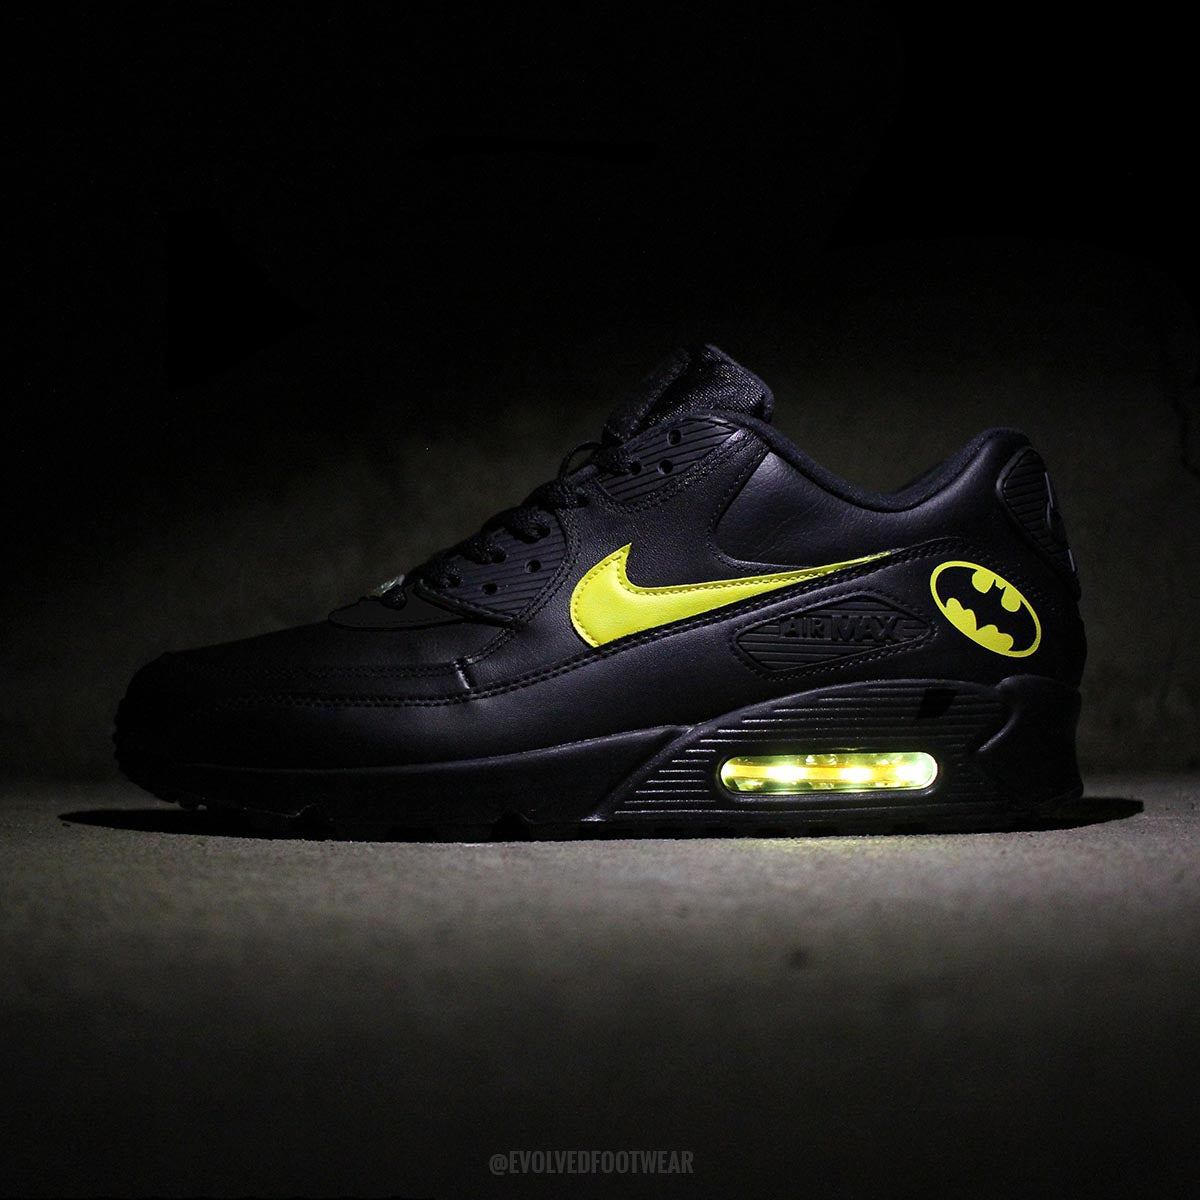 finest selection b7dea af161 ... BATMAN NIKE AIR MAX 90 WITH YELLOW LED LIGHTS . ...